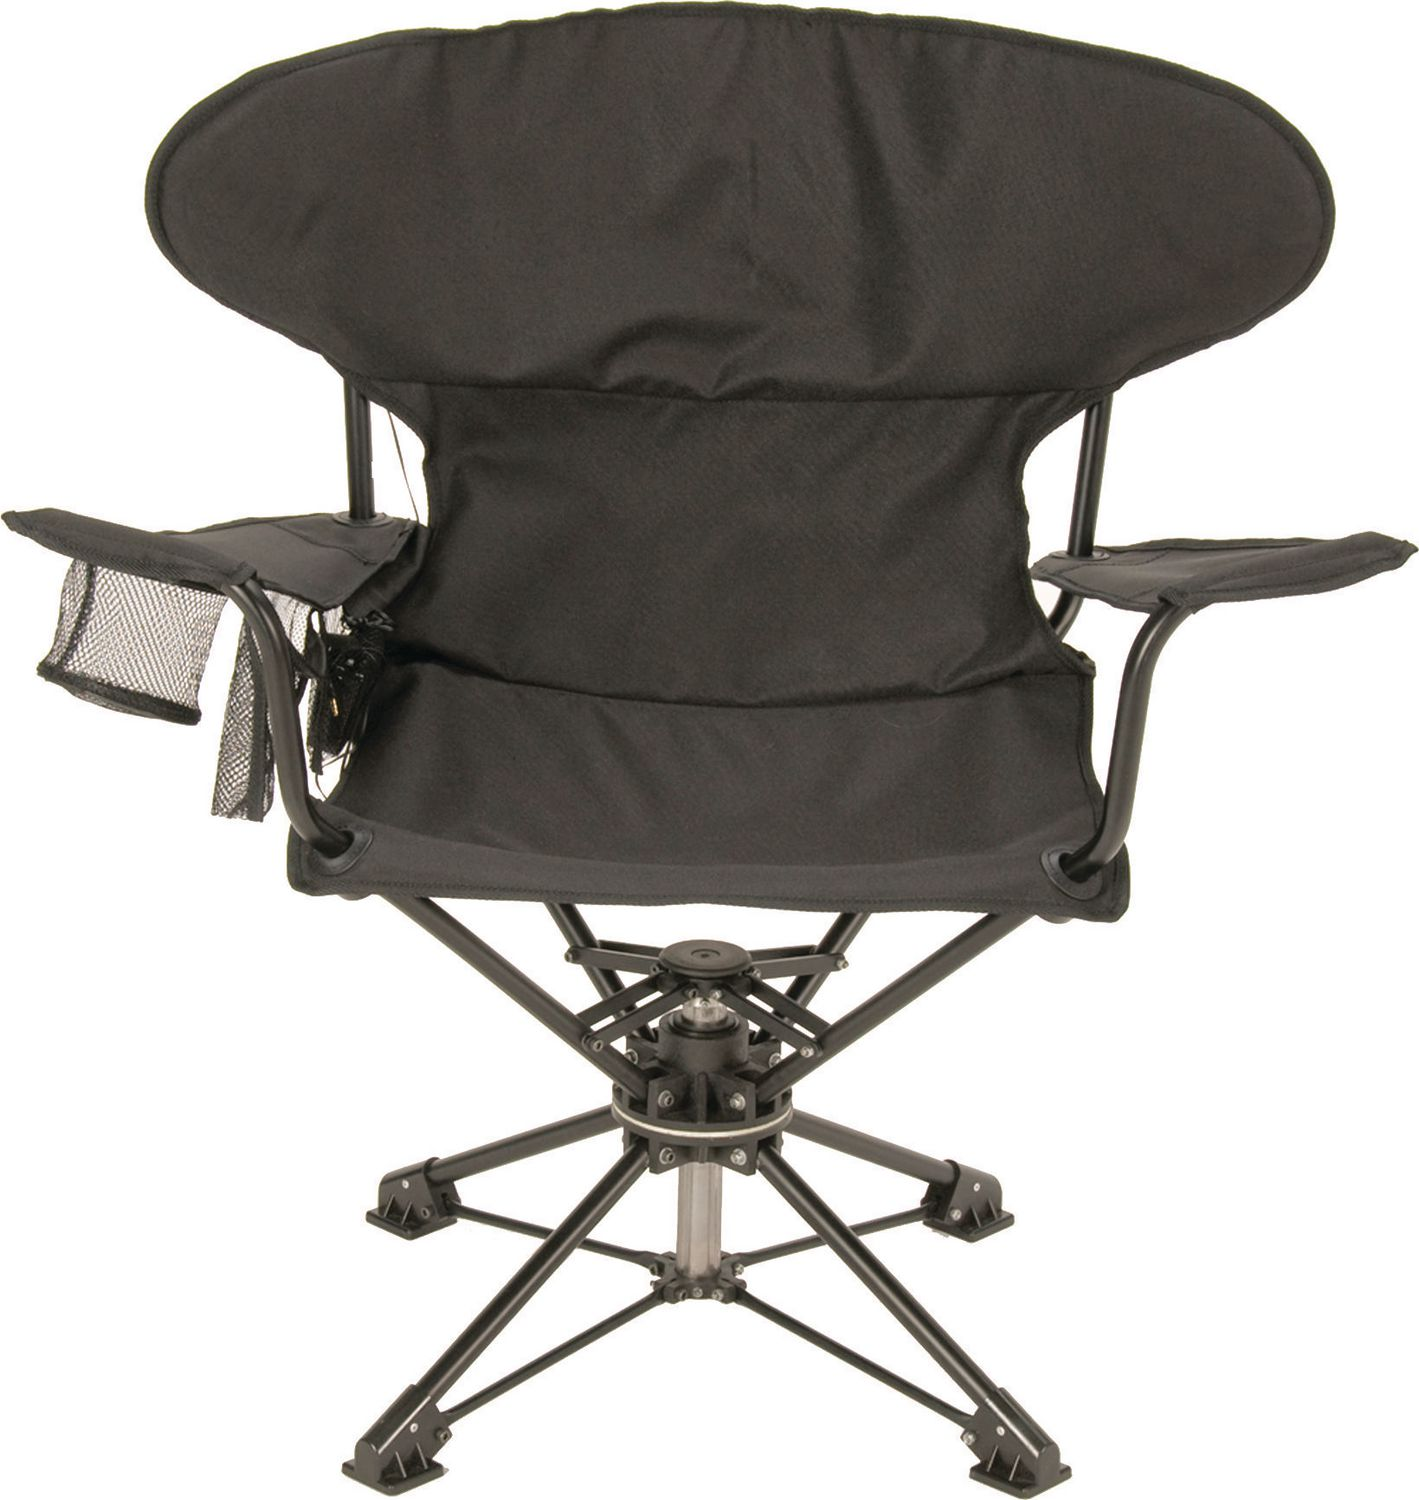 Astonishing Revolve Swivel Folding Chair Camellatalisay Diy Chair Ideas Camellatalisaycom